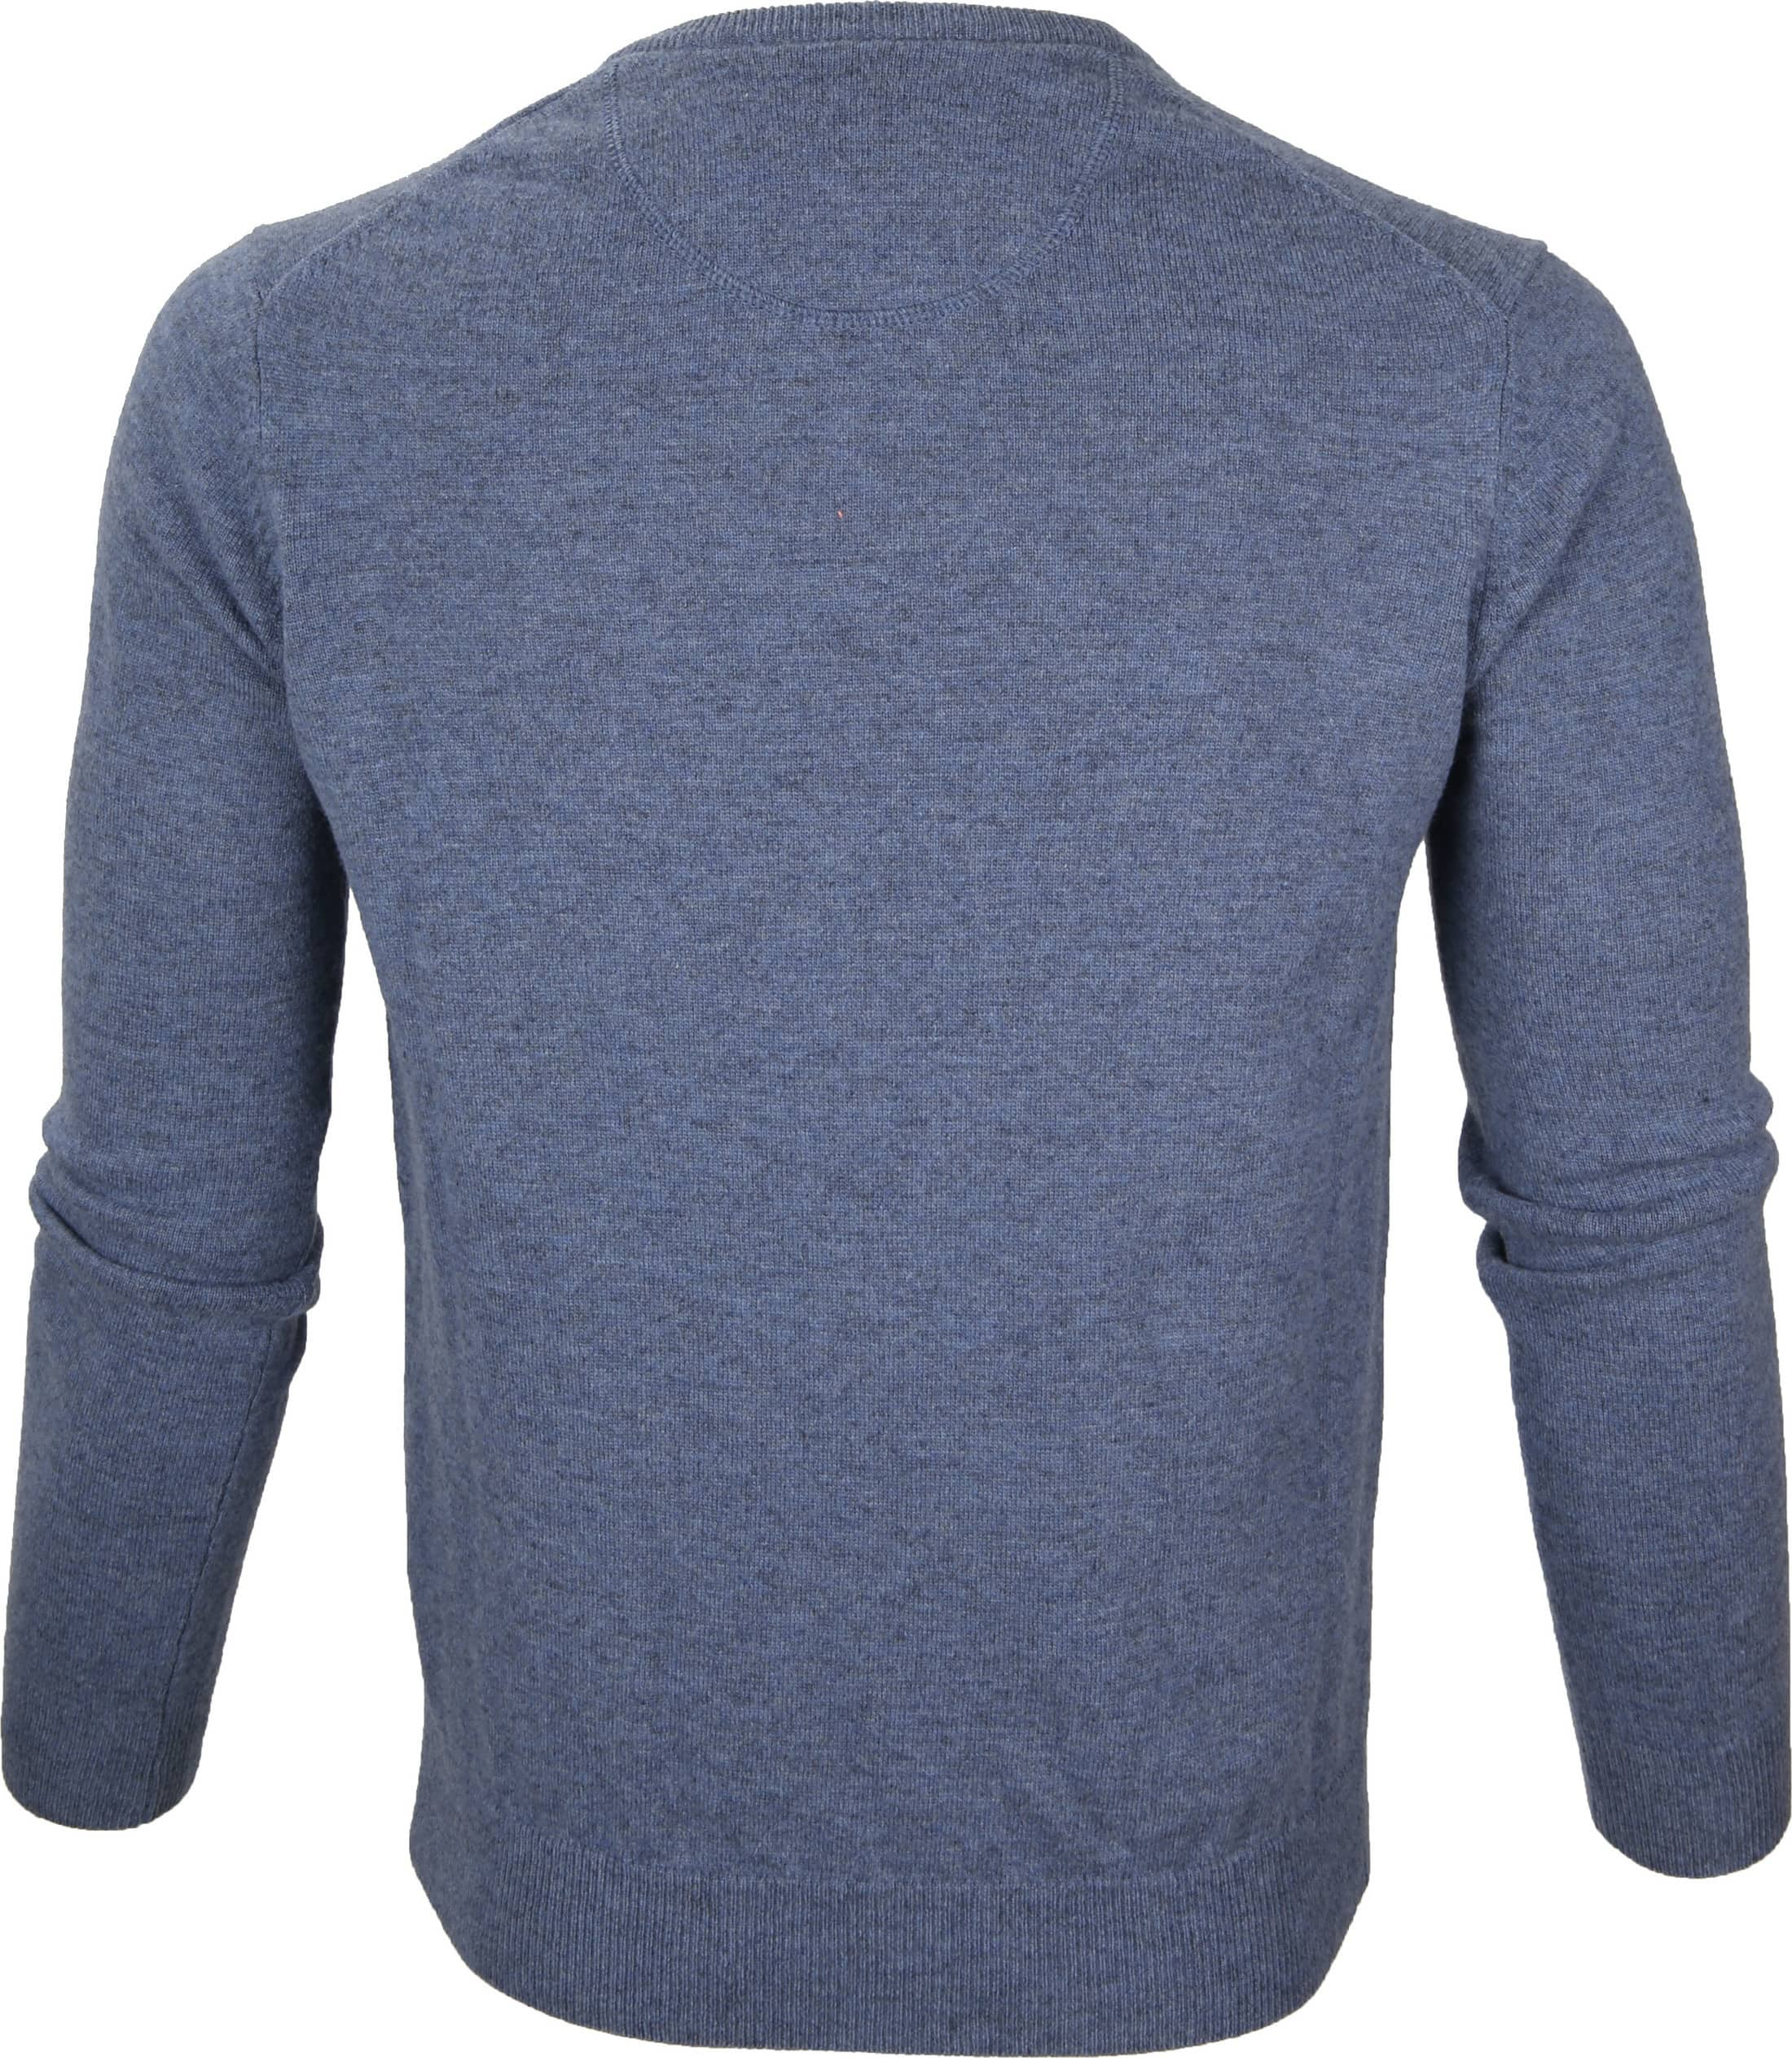 Suitable Pullover Lamswol V-Hals Lichtblauw foto 2